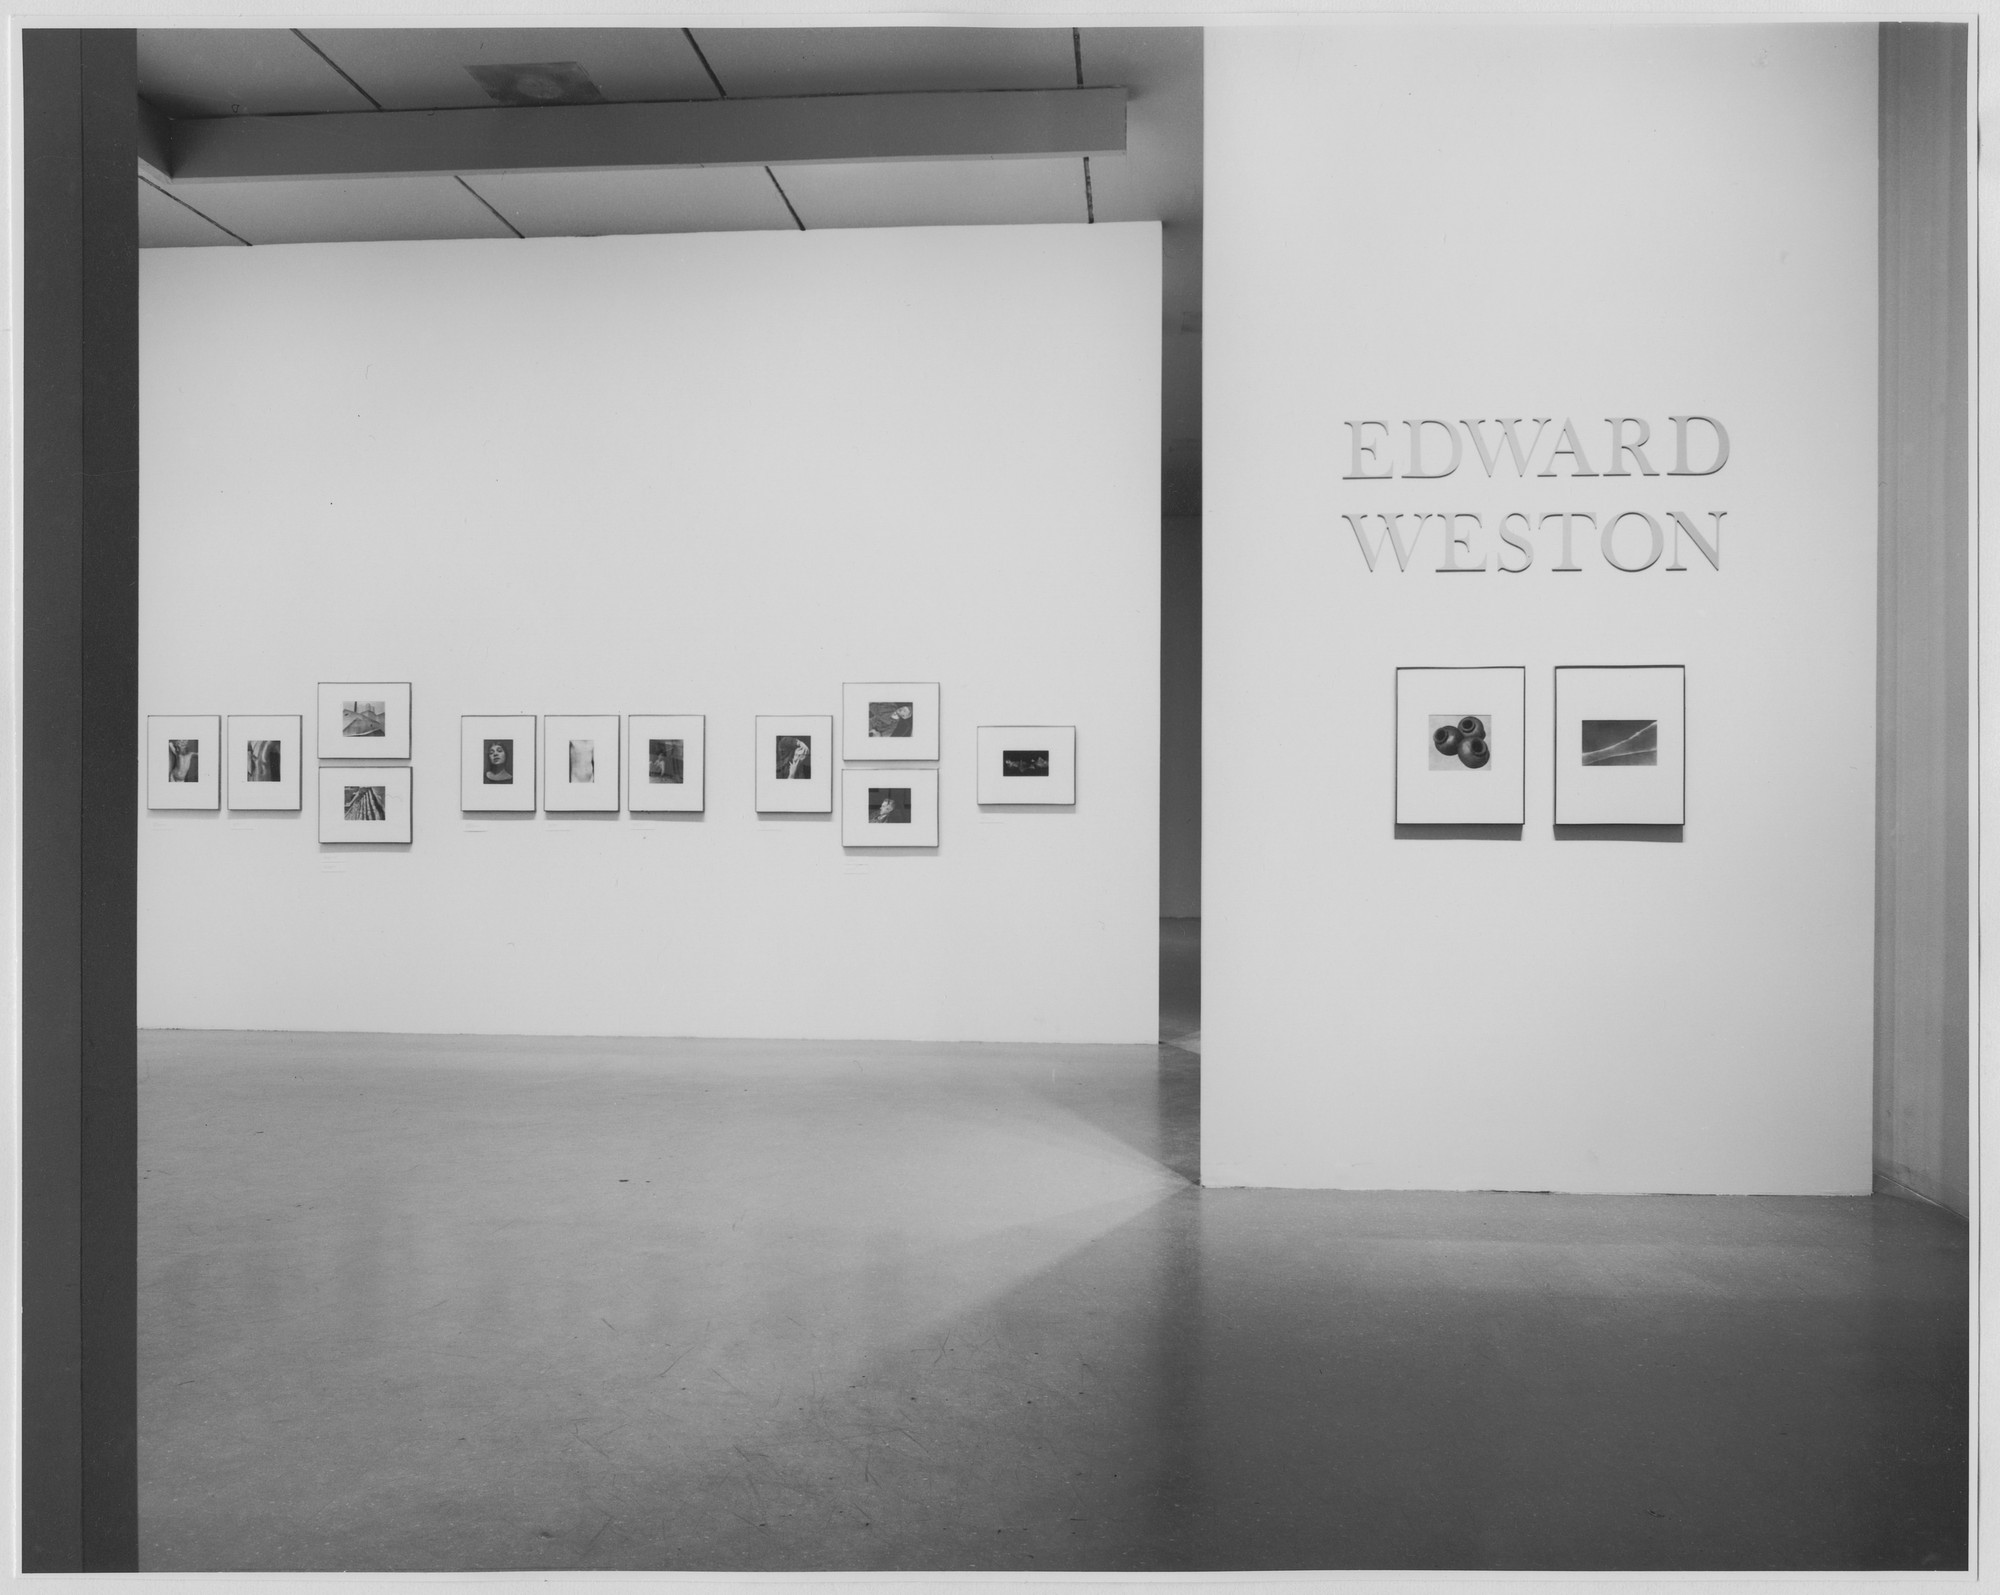 "Installation view of the exhibition, ""Edward Weston."" January 29, 1975–March 30, 1975. Photographic Archive. The Museum of Modern Art Archives, New York. IN1085.1. Photograph by Katherine Keller."